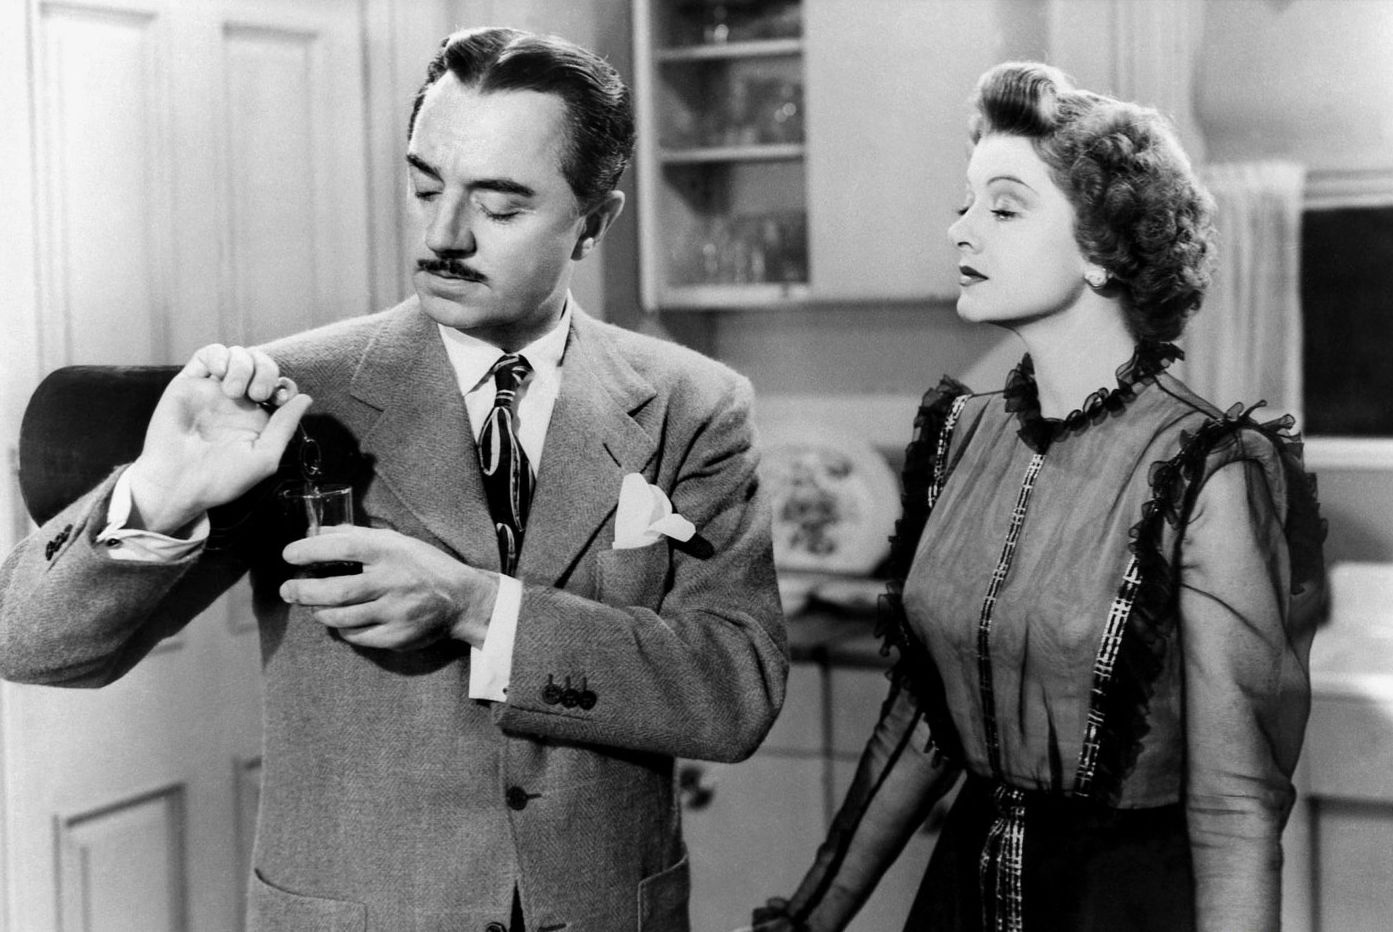 William Powell in The Thin Man Goes Home With Myrna Loy